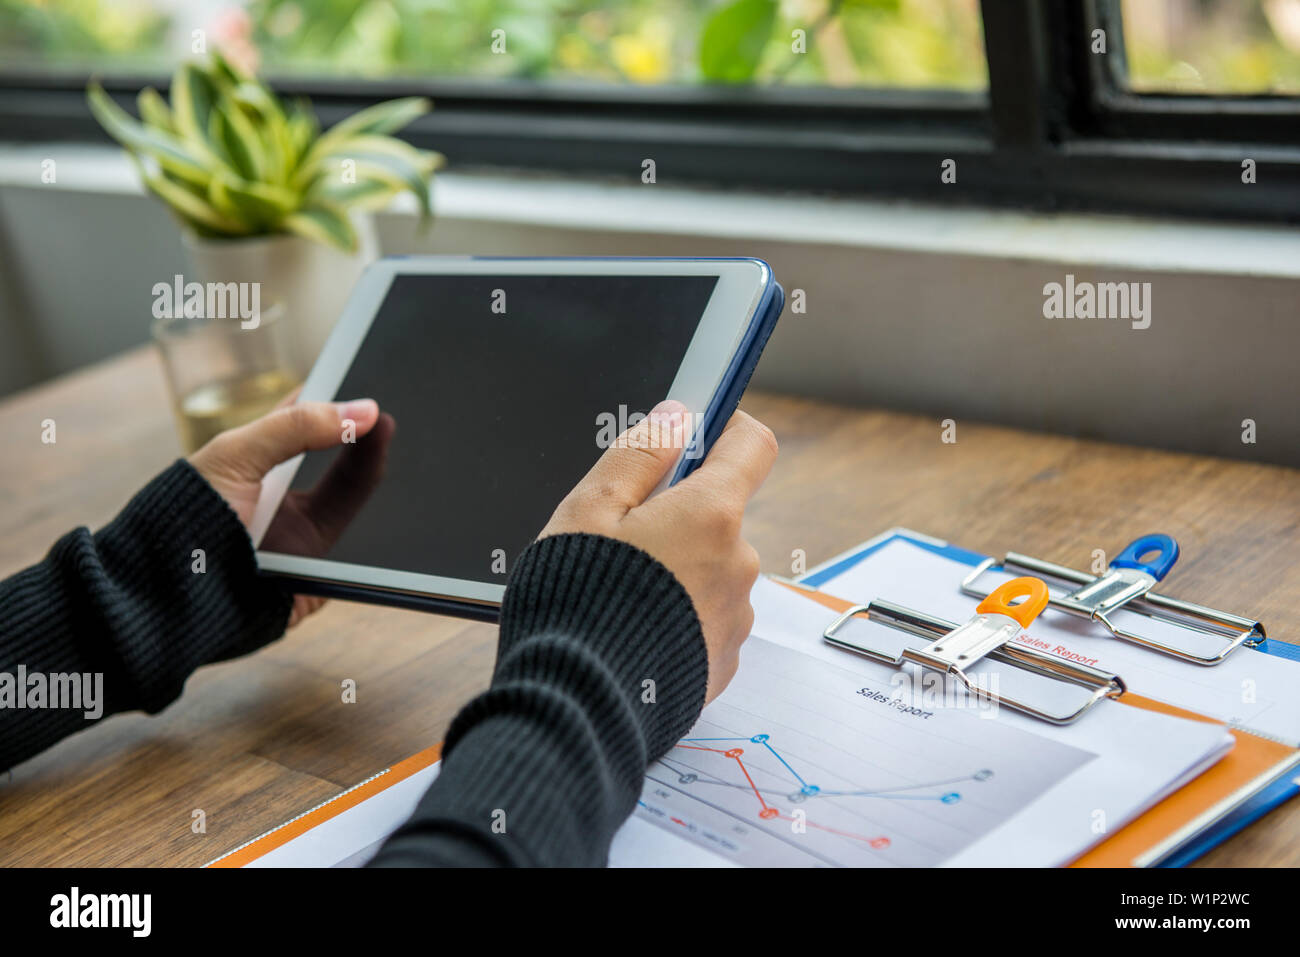 Close up of woman hand using tablet at office desk - Stock Image